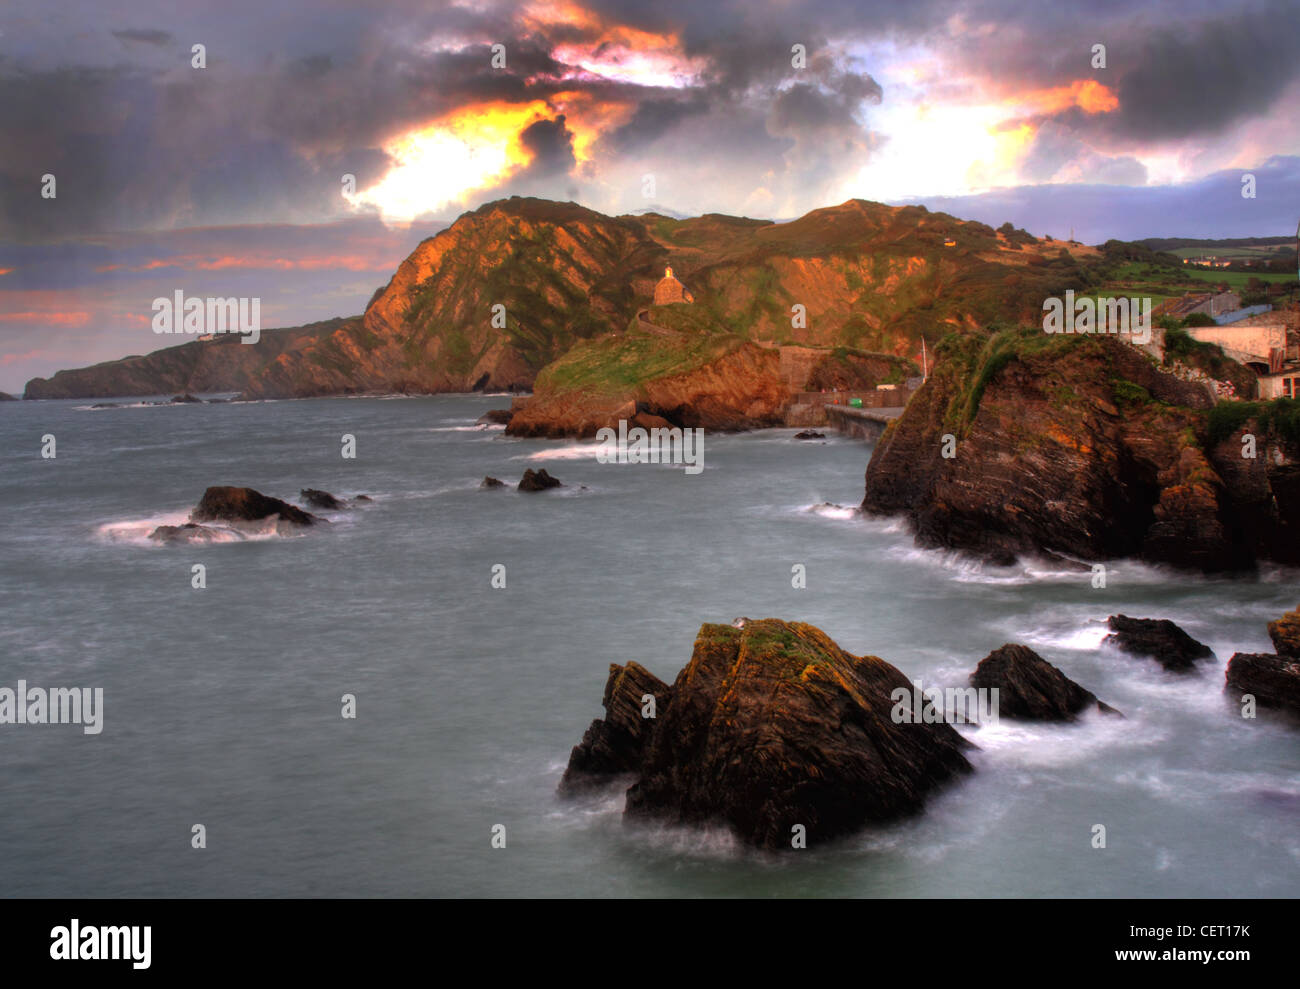 Sun set over Ilfracombe North Dorset, SW England, UK - Stock Image